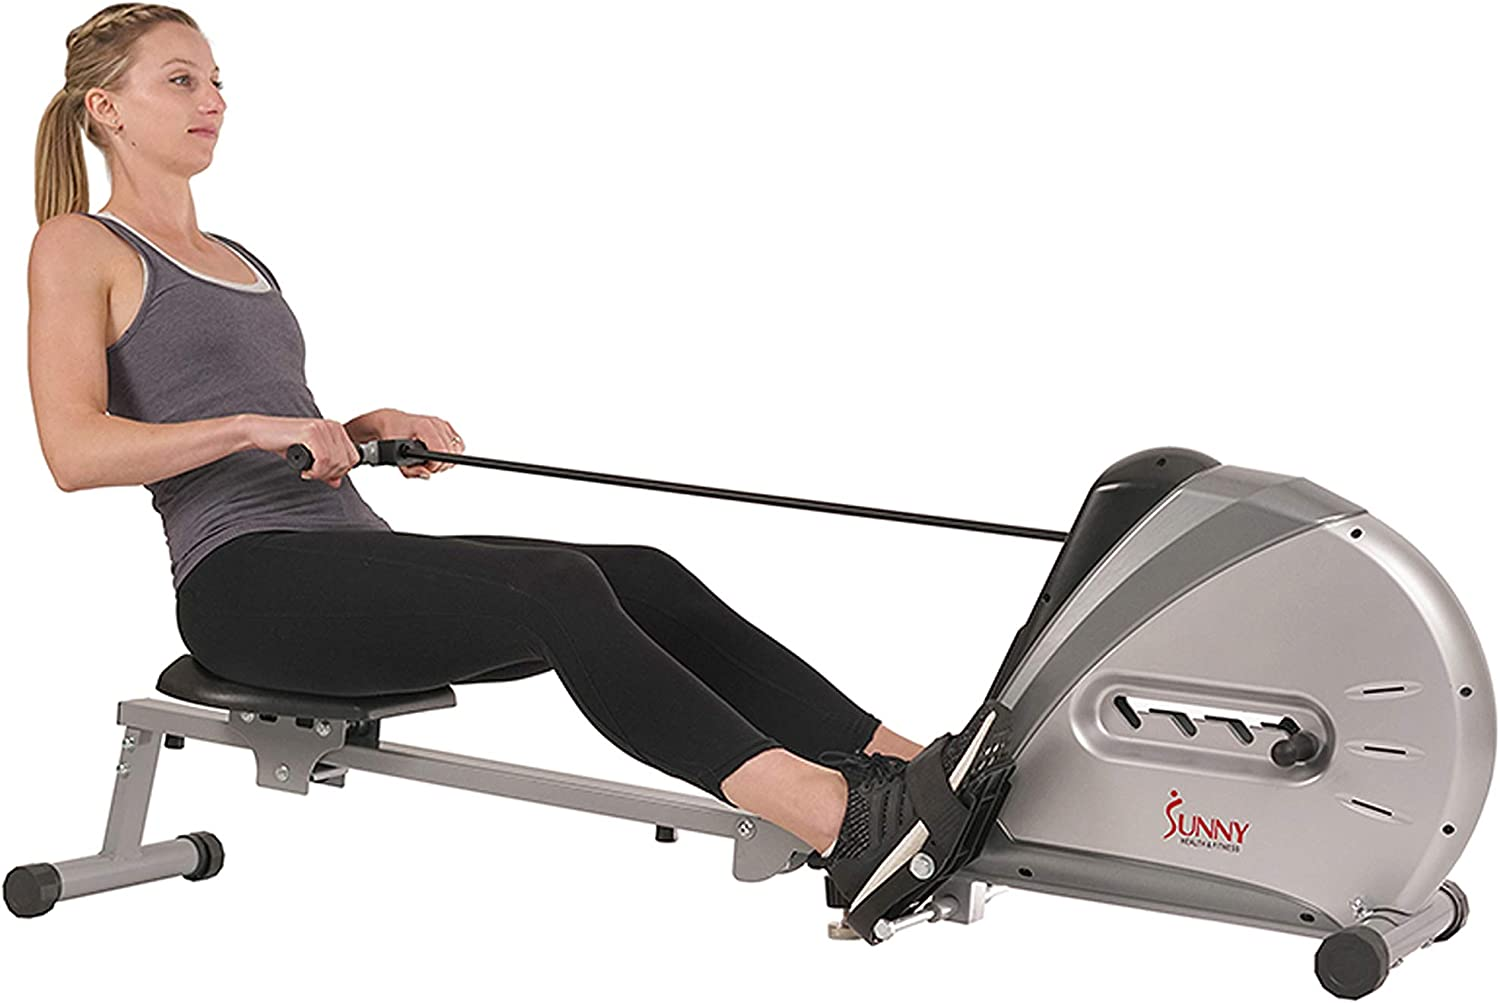 Sunny Health & Fitness SF-RW5606 Elastic Cord Rowing Machine Rower w/LCD Monitor